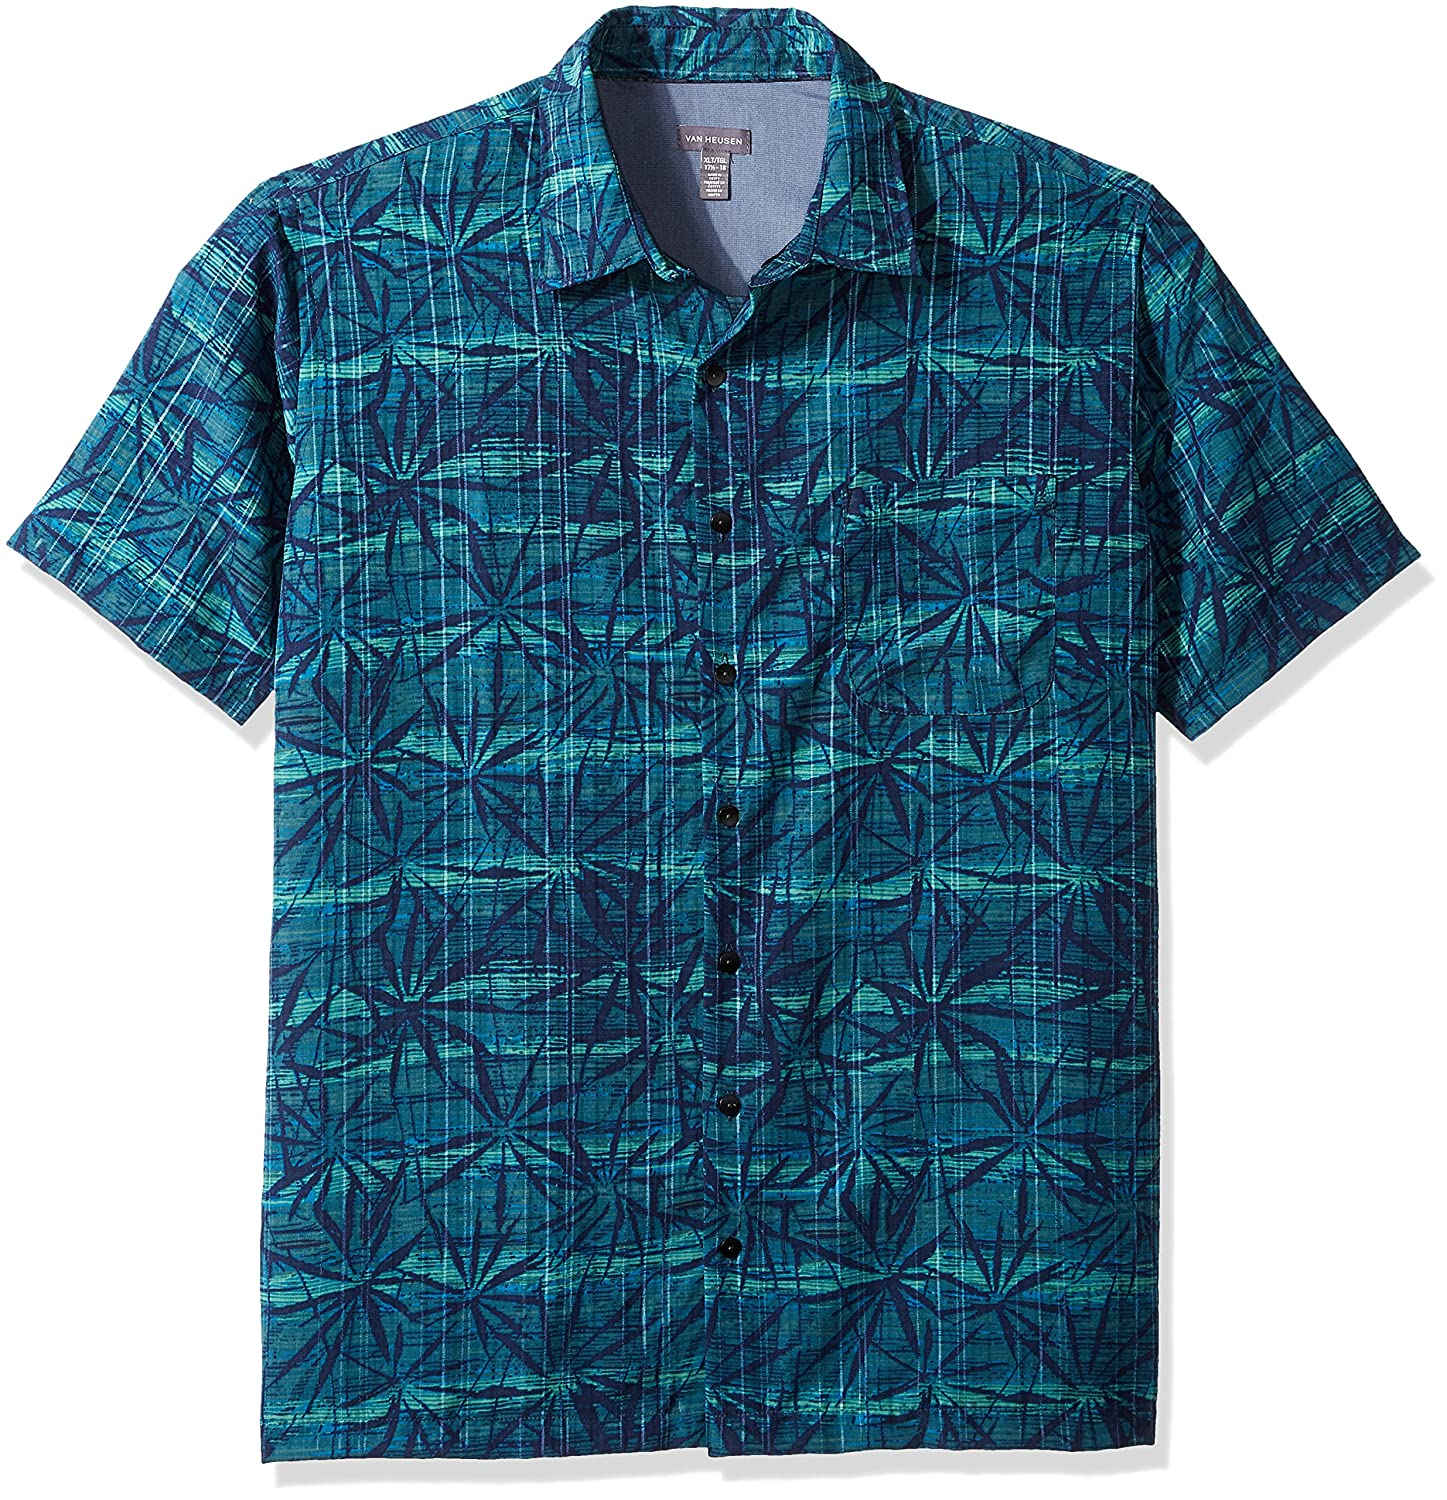 Van Heusen Mens Big and Tall Oasis Printed Short Sleeve Shirt